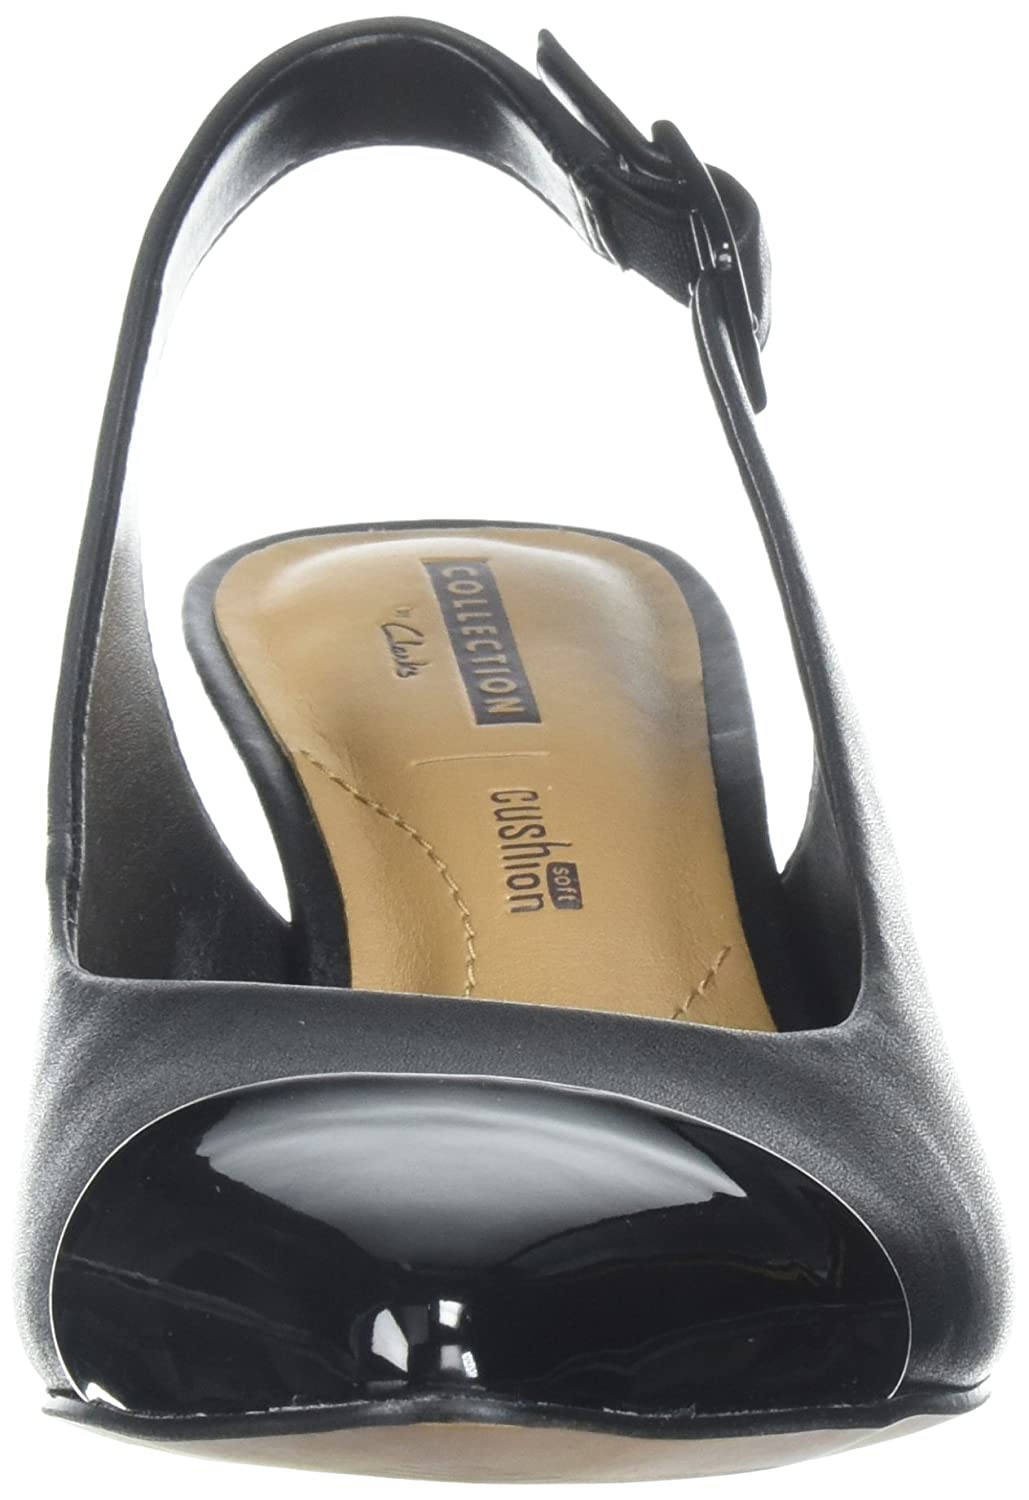 41e013aac0de Clarks Women s Crewso Emmy Pump  Buy Online at Low Prices in India -  Amazon.in